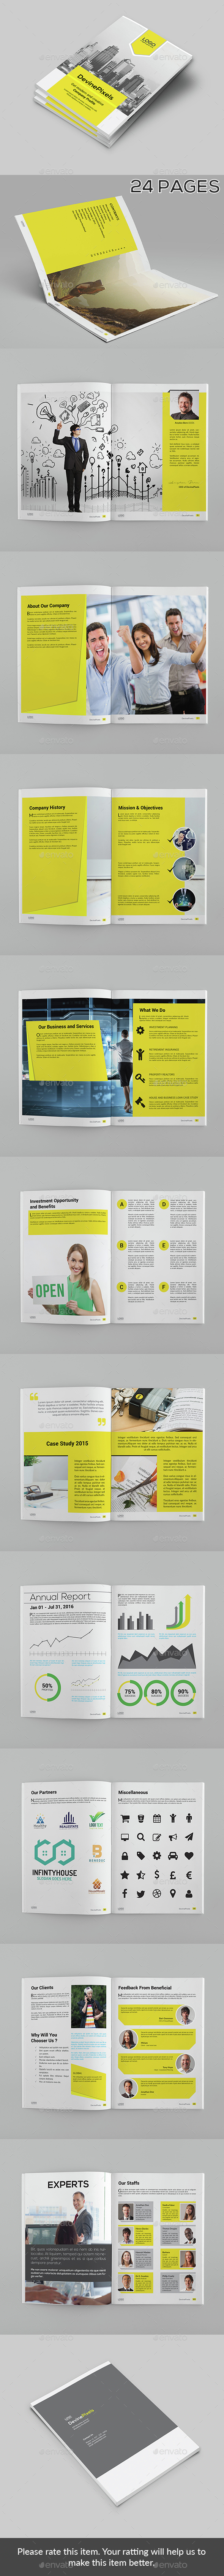 Modern Company Profile Brochure - Corporate Brochures